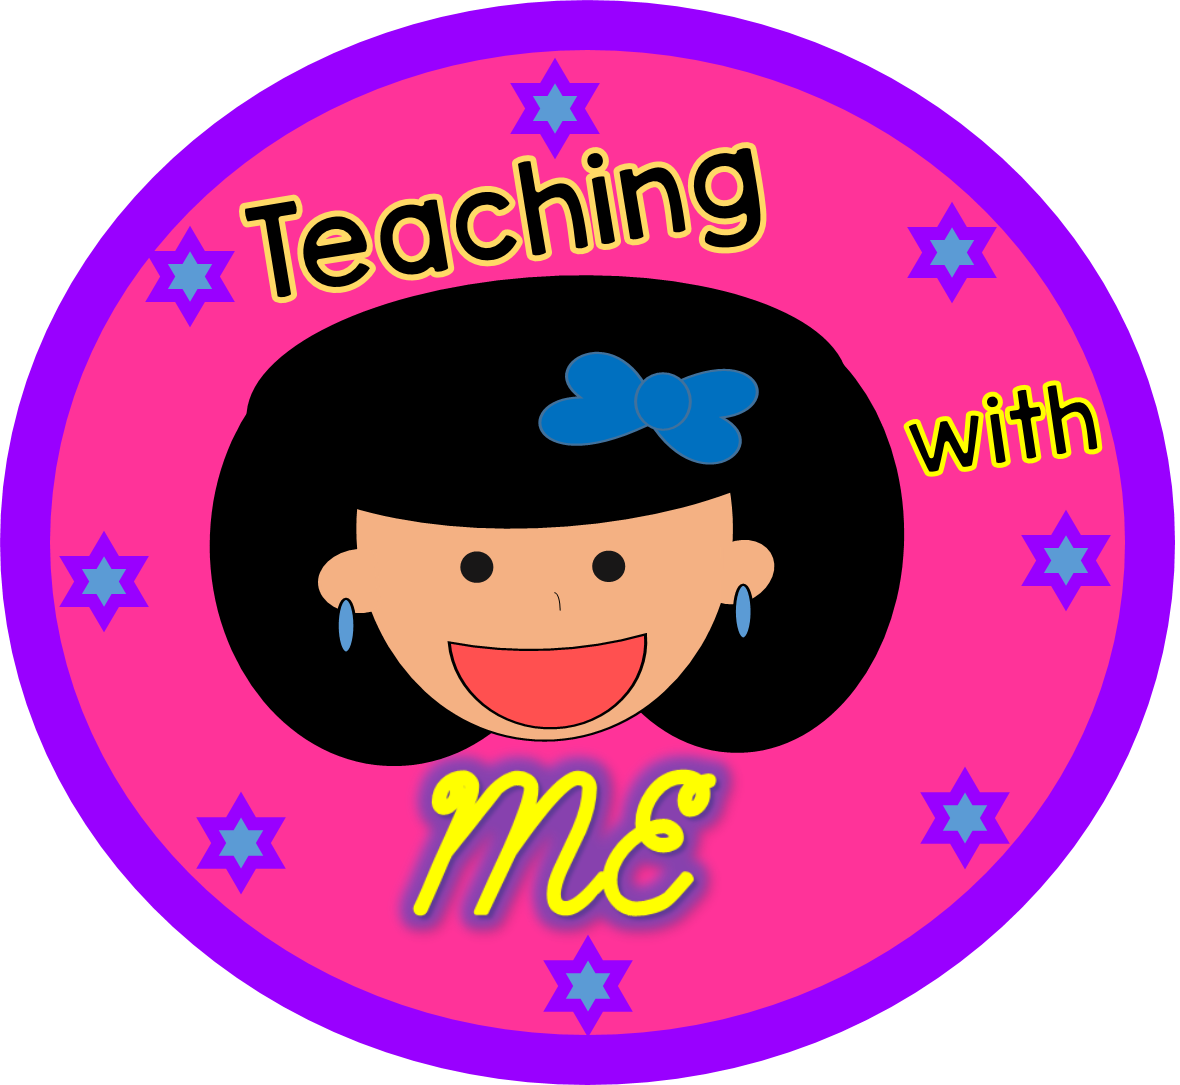 teaching-with-me-logo.png